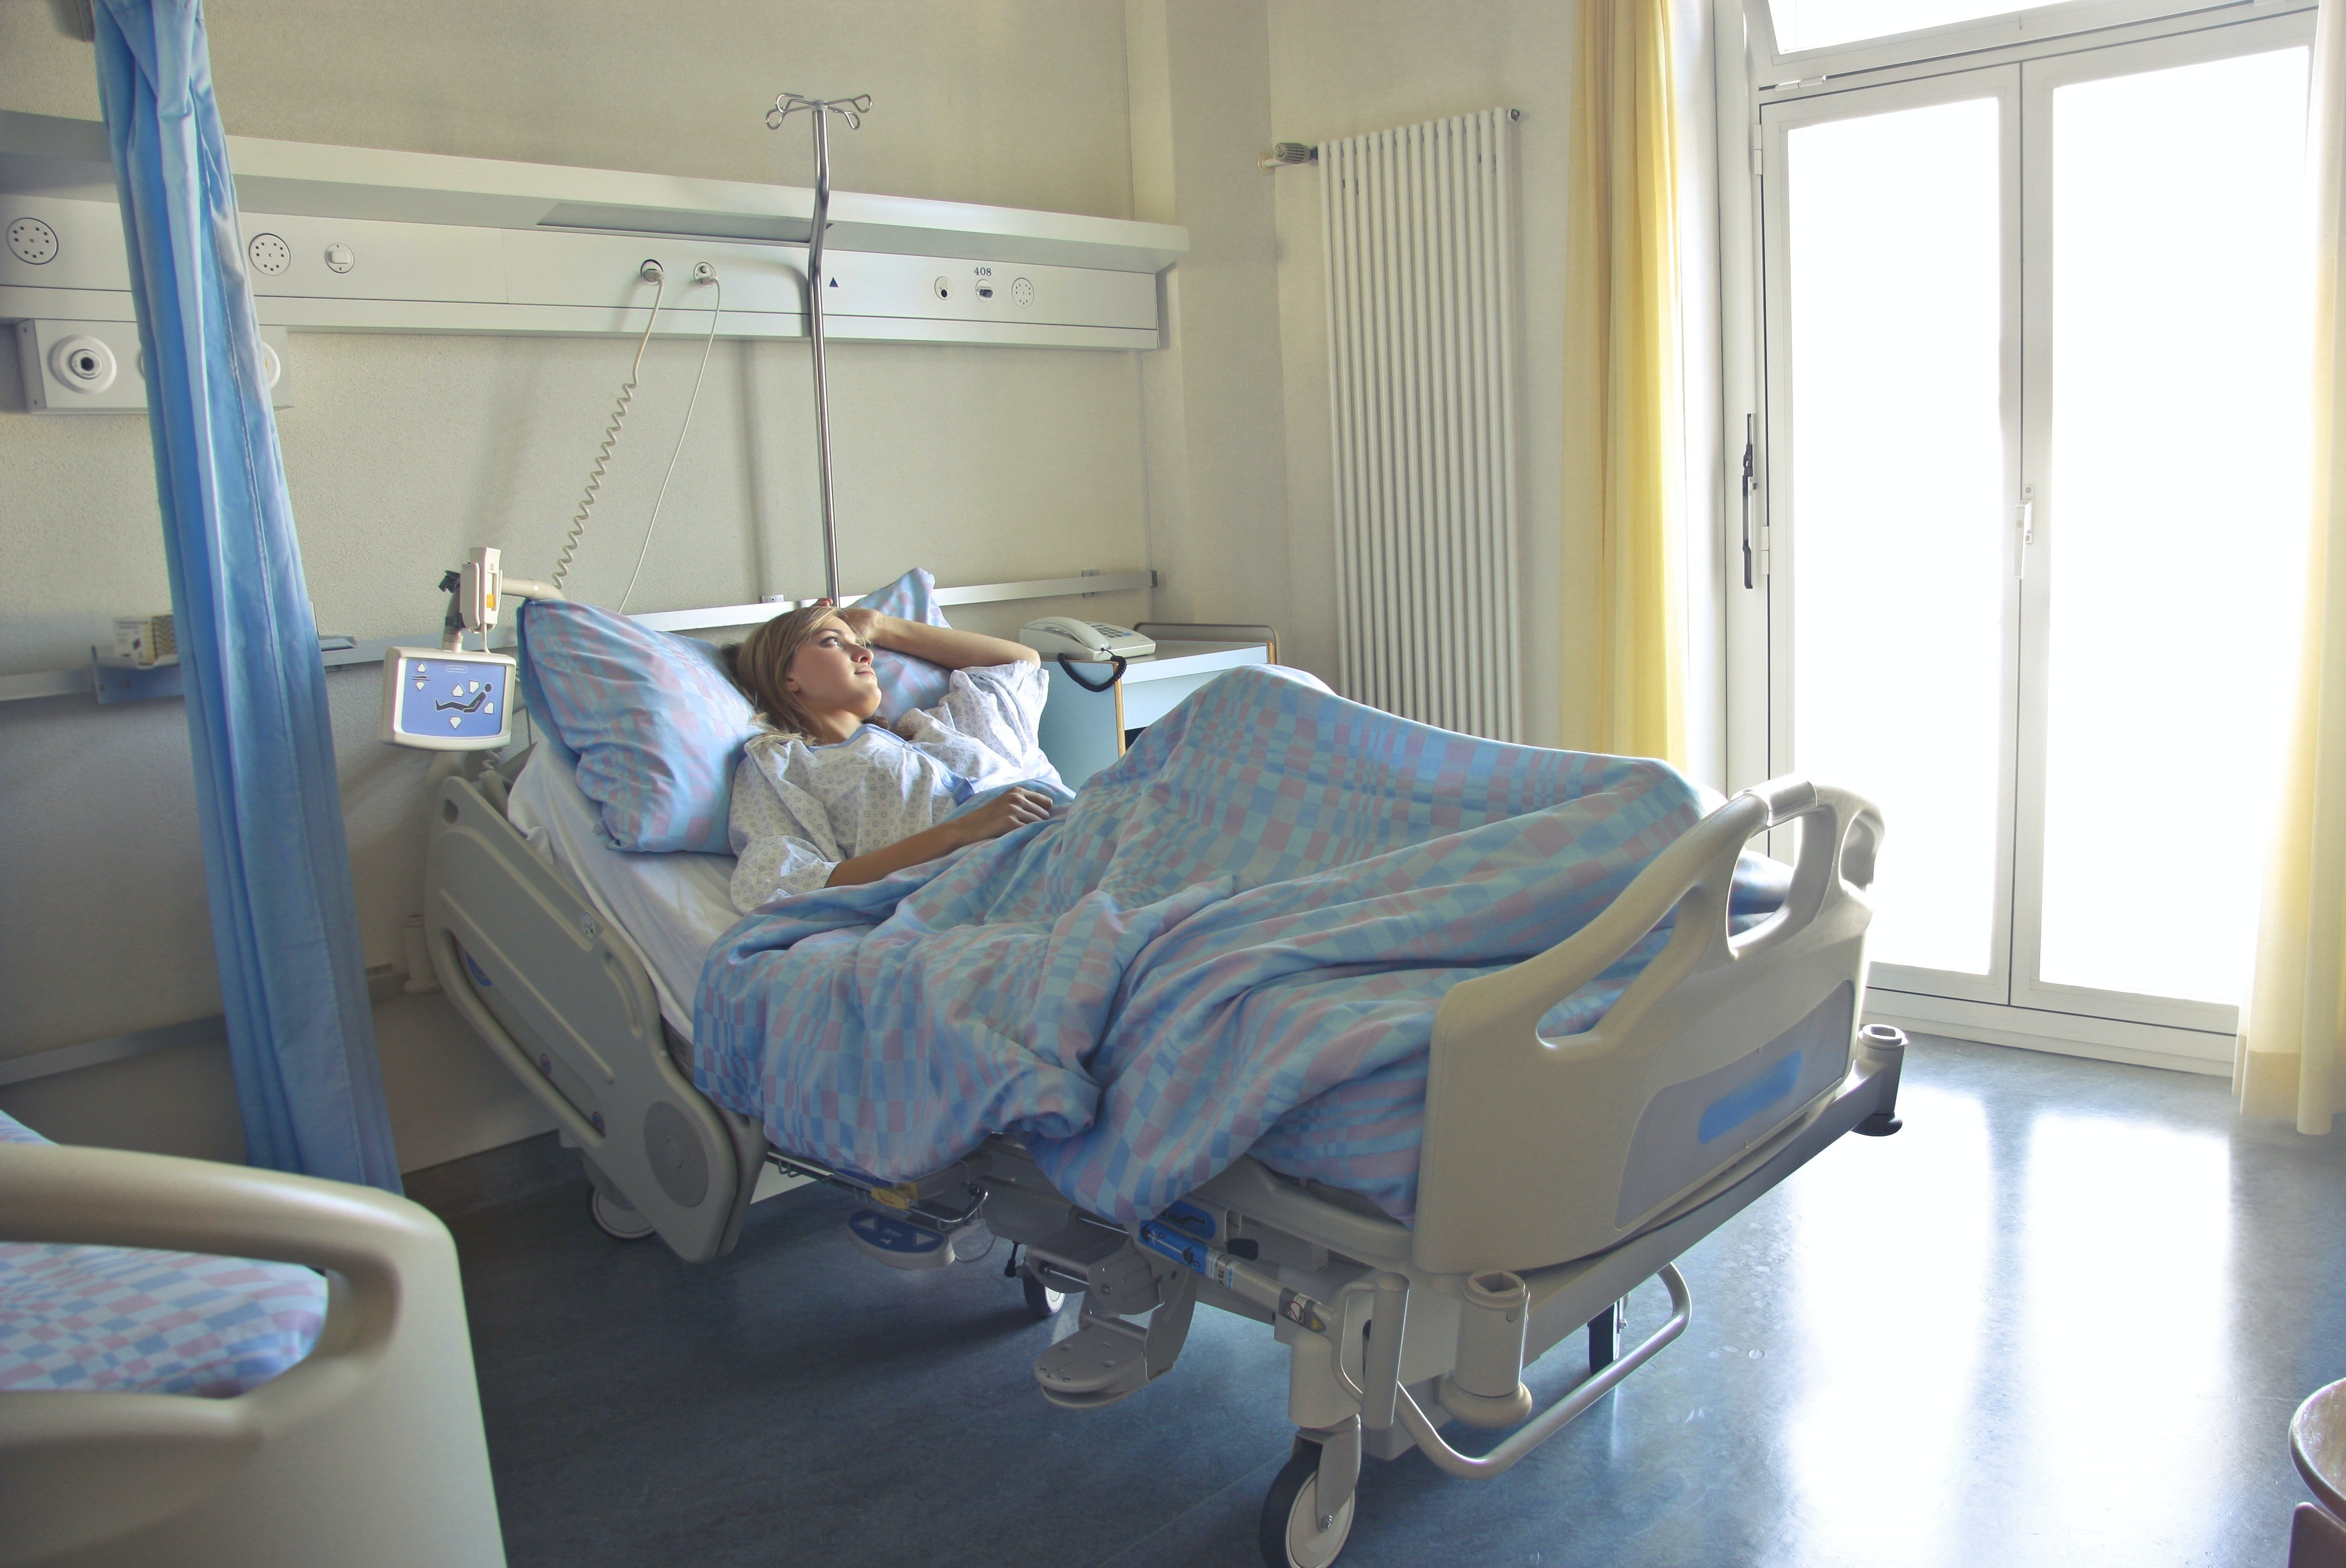 A woman on a hospital bed. | Photo: Pexels